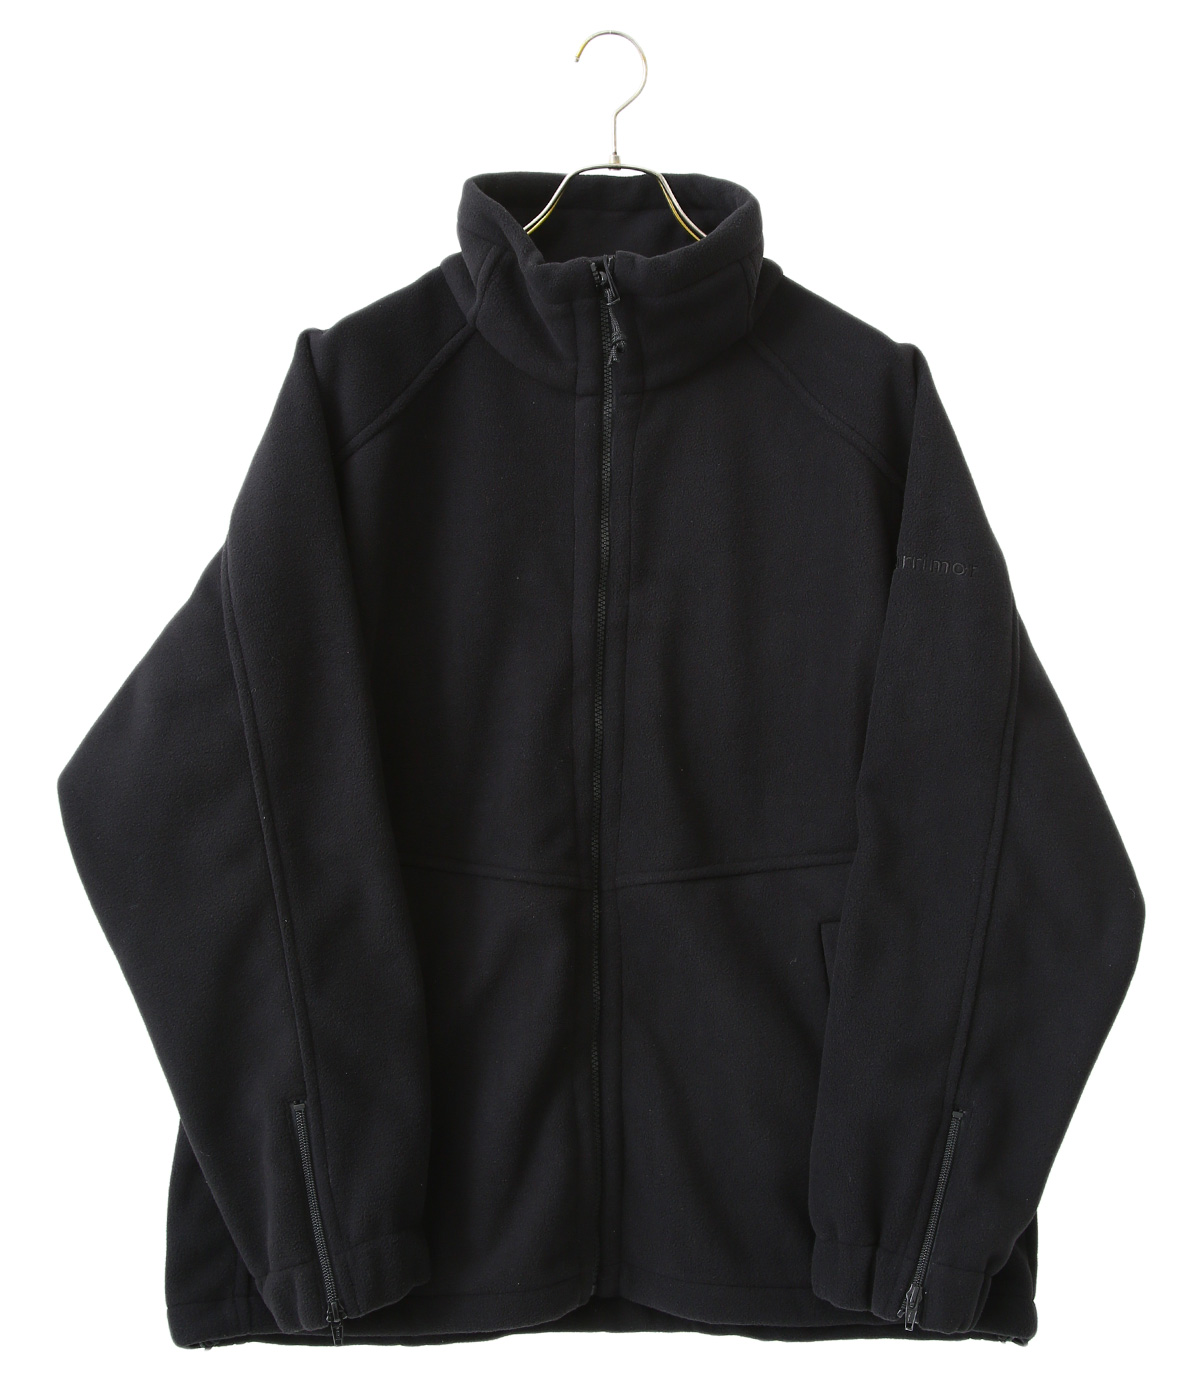 ×Karrimor Fleece Blouzon